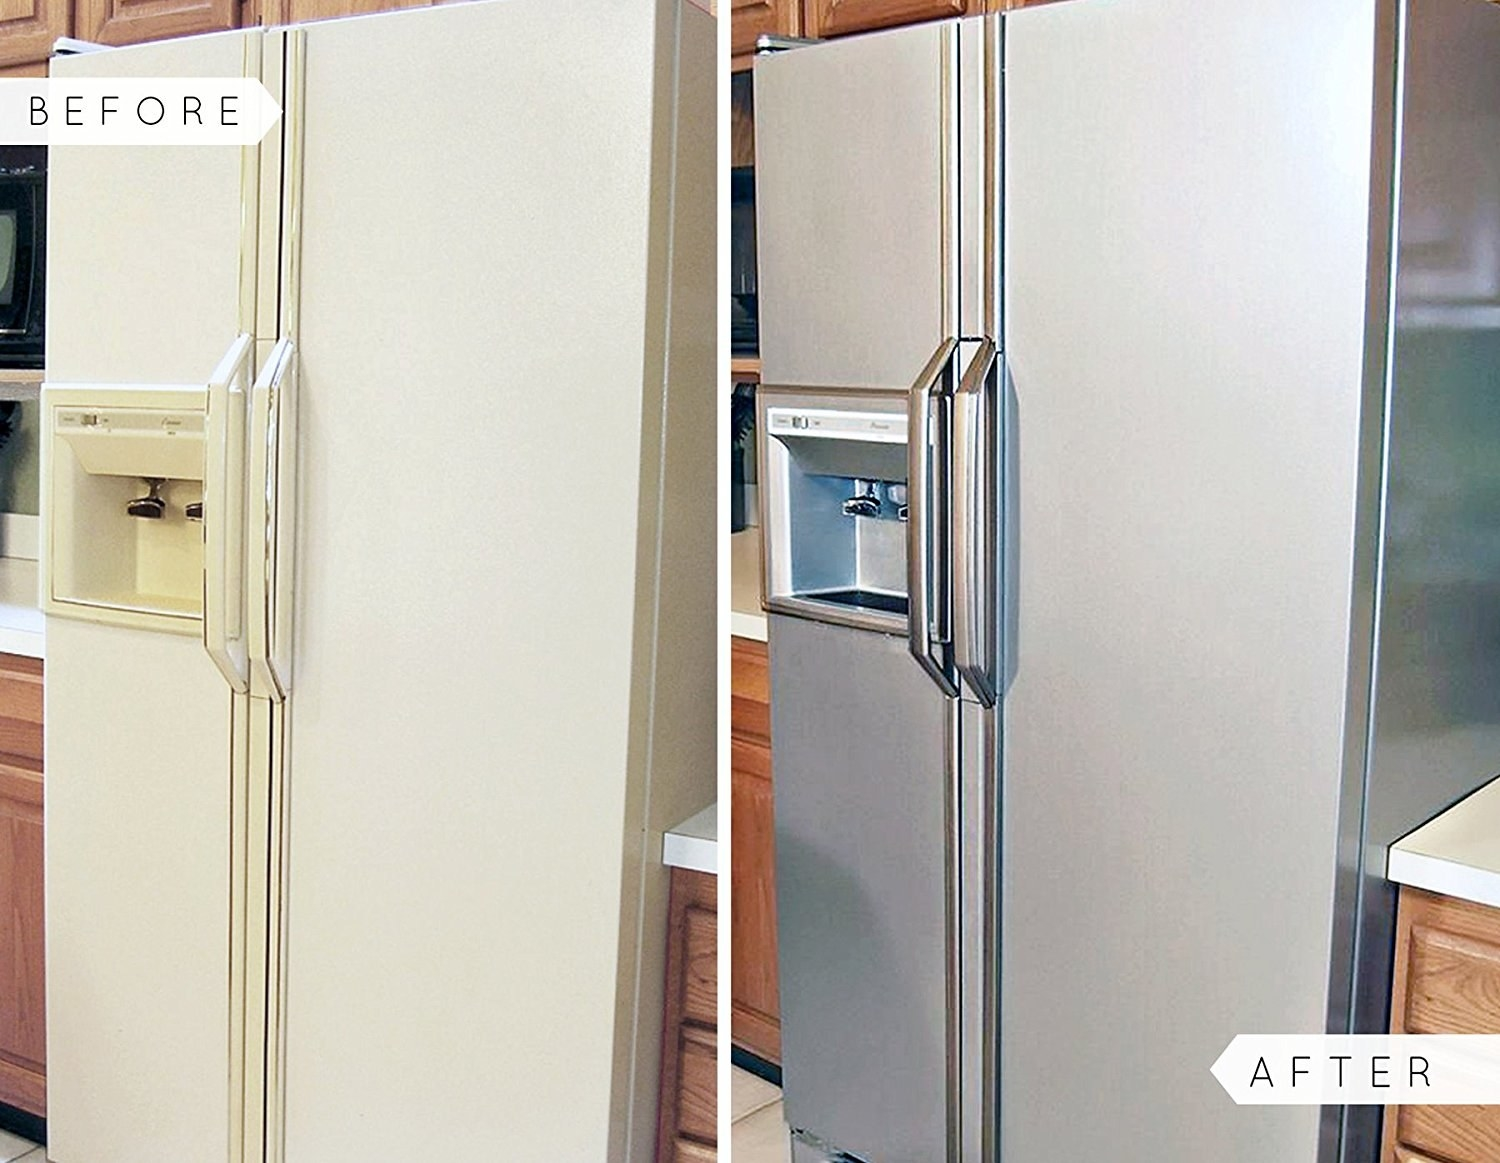 A before and after photo showing their fridge updated with the chrome paint